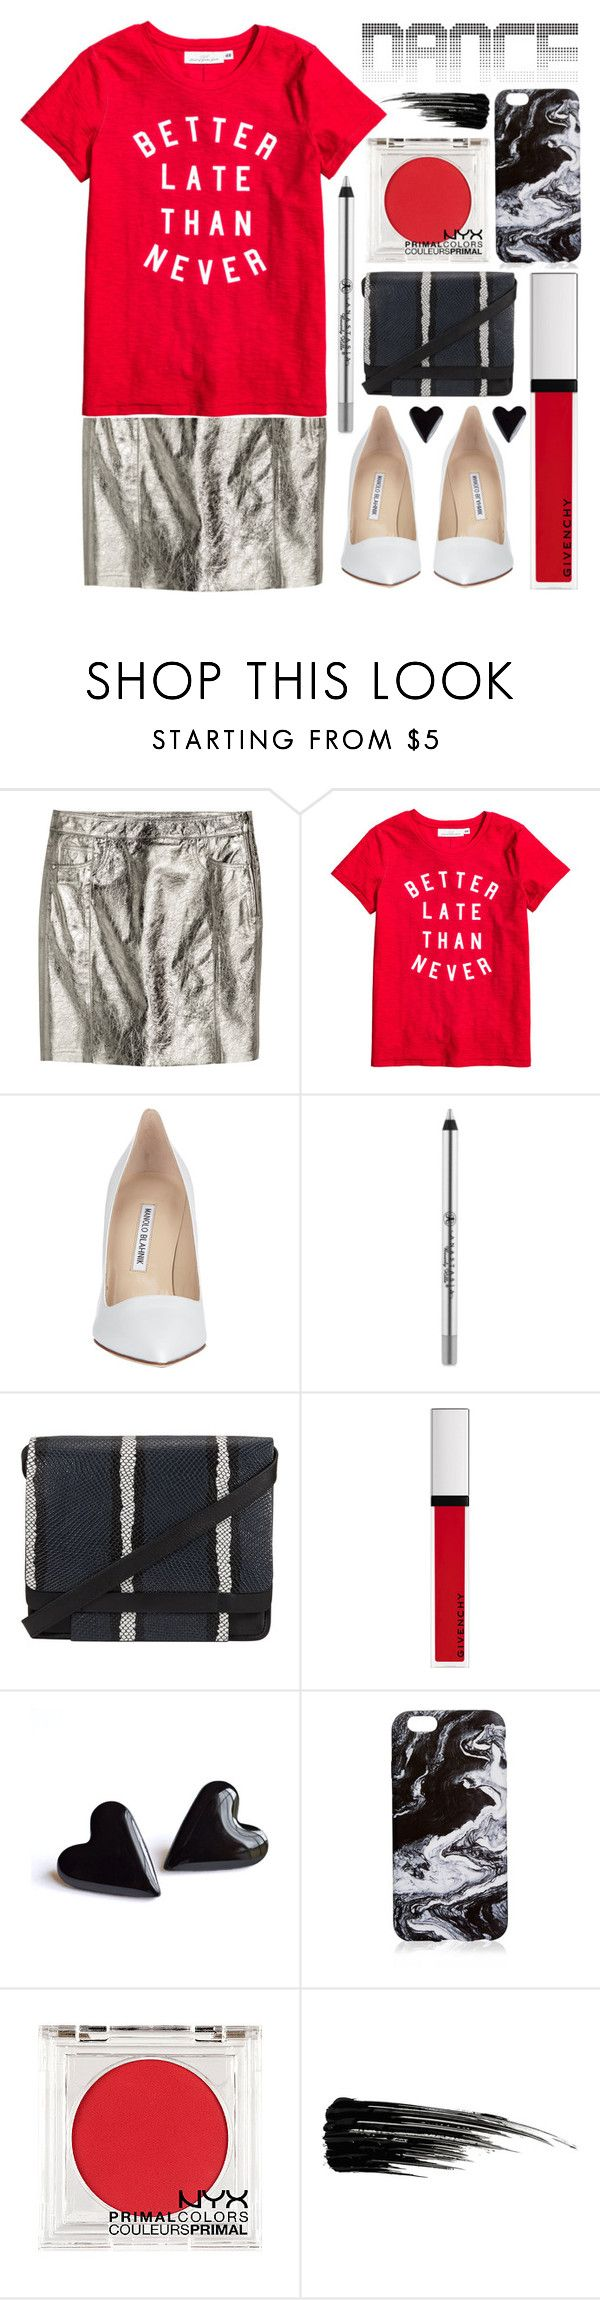 """getting late"" by foundlostme ❤ liked on Polyvore featuring H&M, Manolo Blahnik, Anastasia Beverly Hills, Kin by John Lewis, Givenchy, NYX, Urban Decay and danceparty"